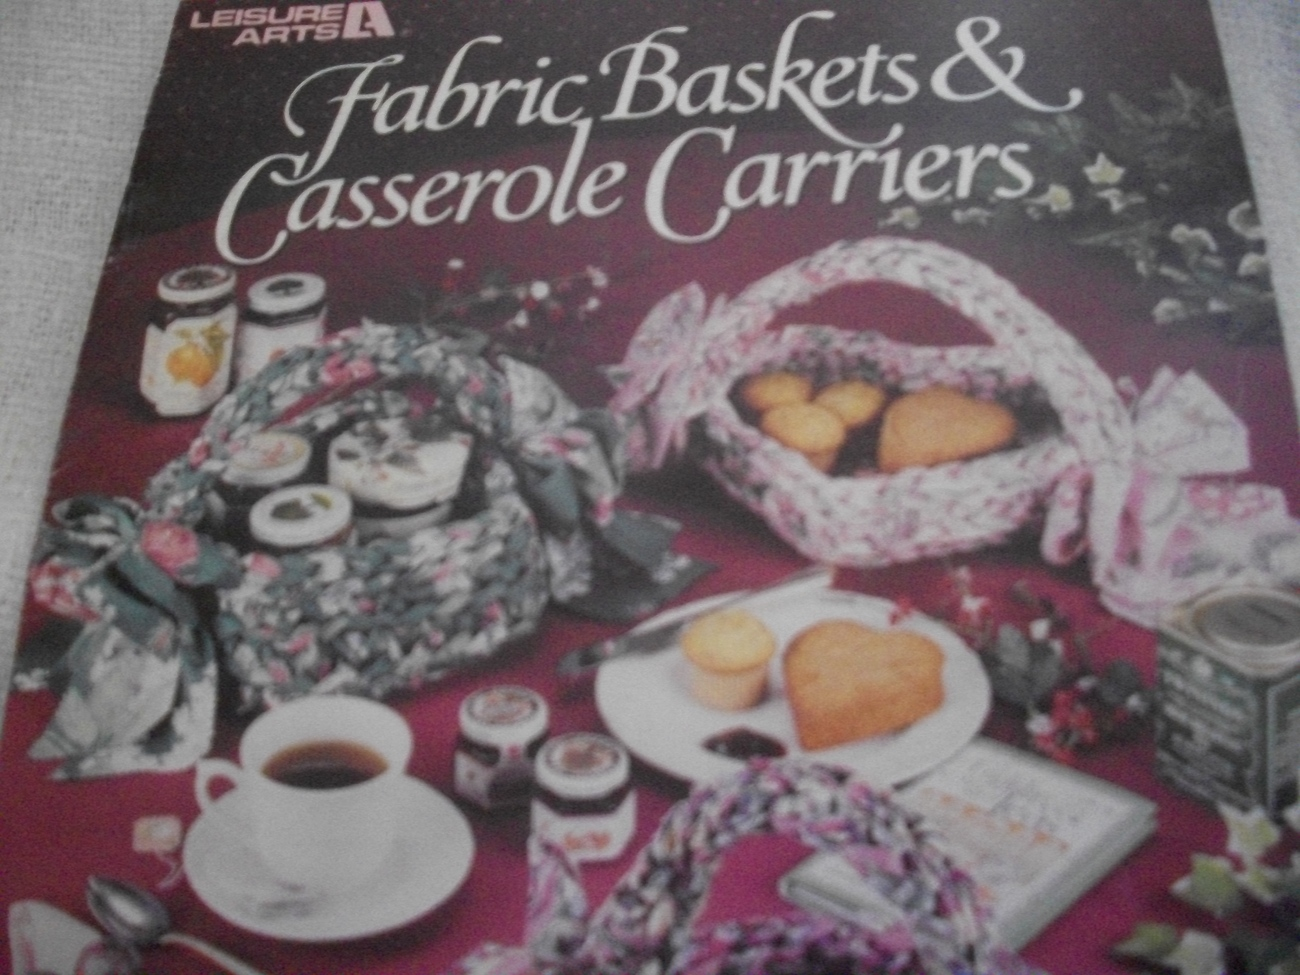 Primary image for Fabric Baskets & Casserole Carriers to Crochet